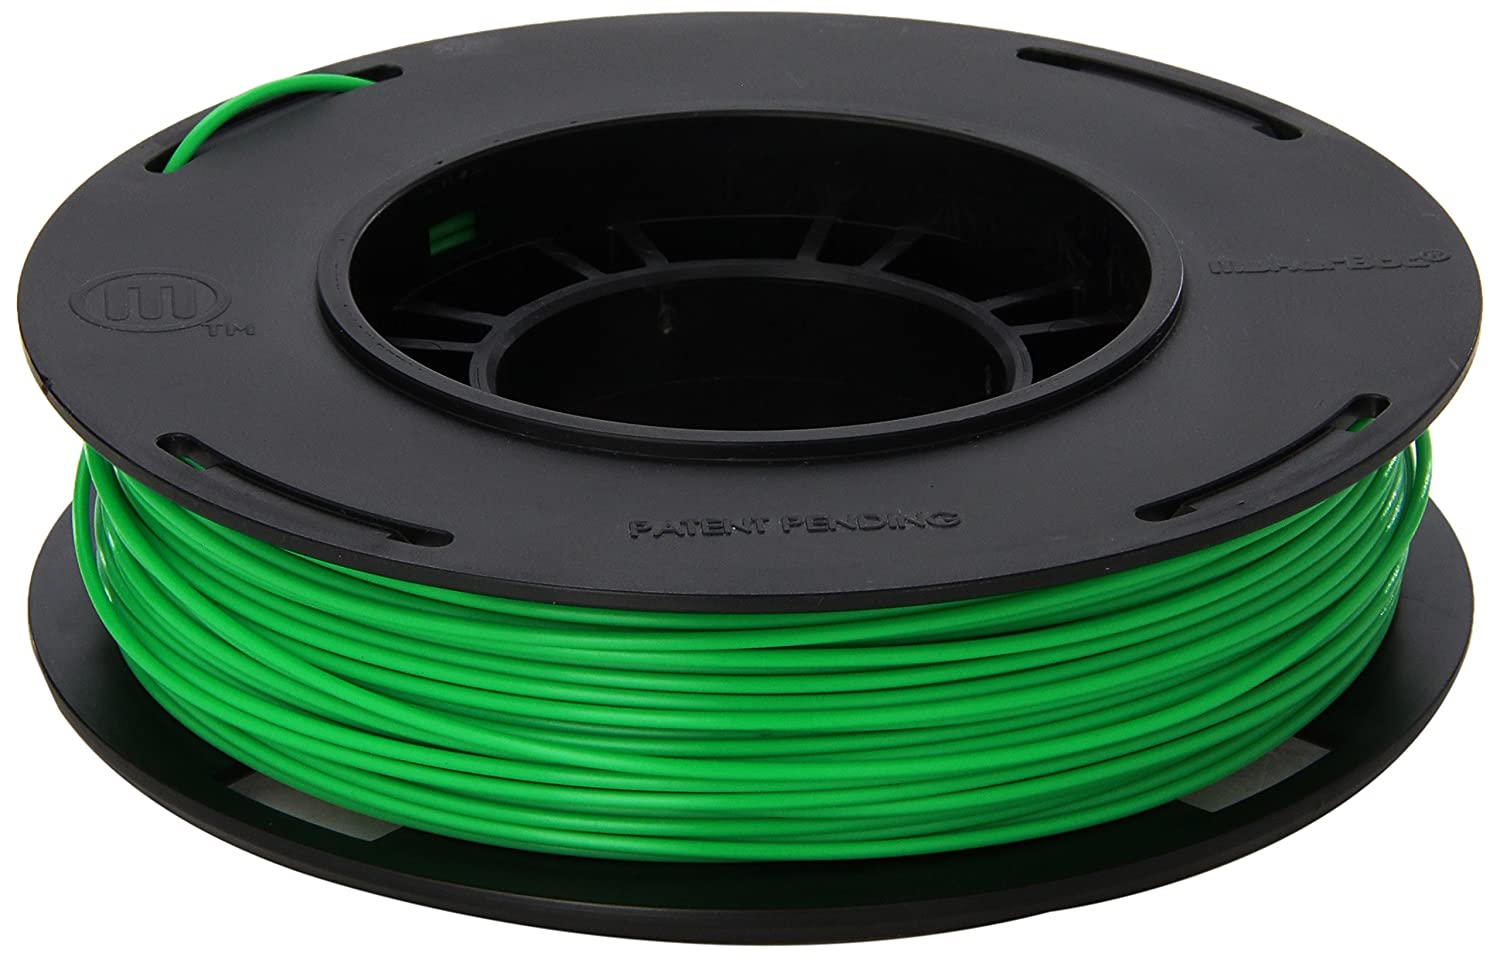 MakerBot PLA Filament, 1.75 mm Diameter, Small Spool, Green MP05951